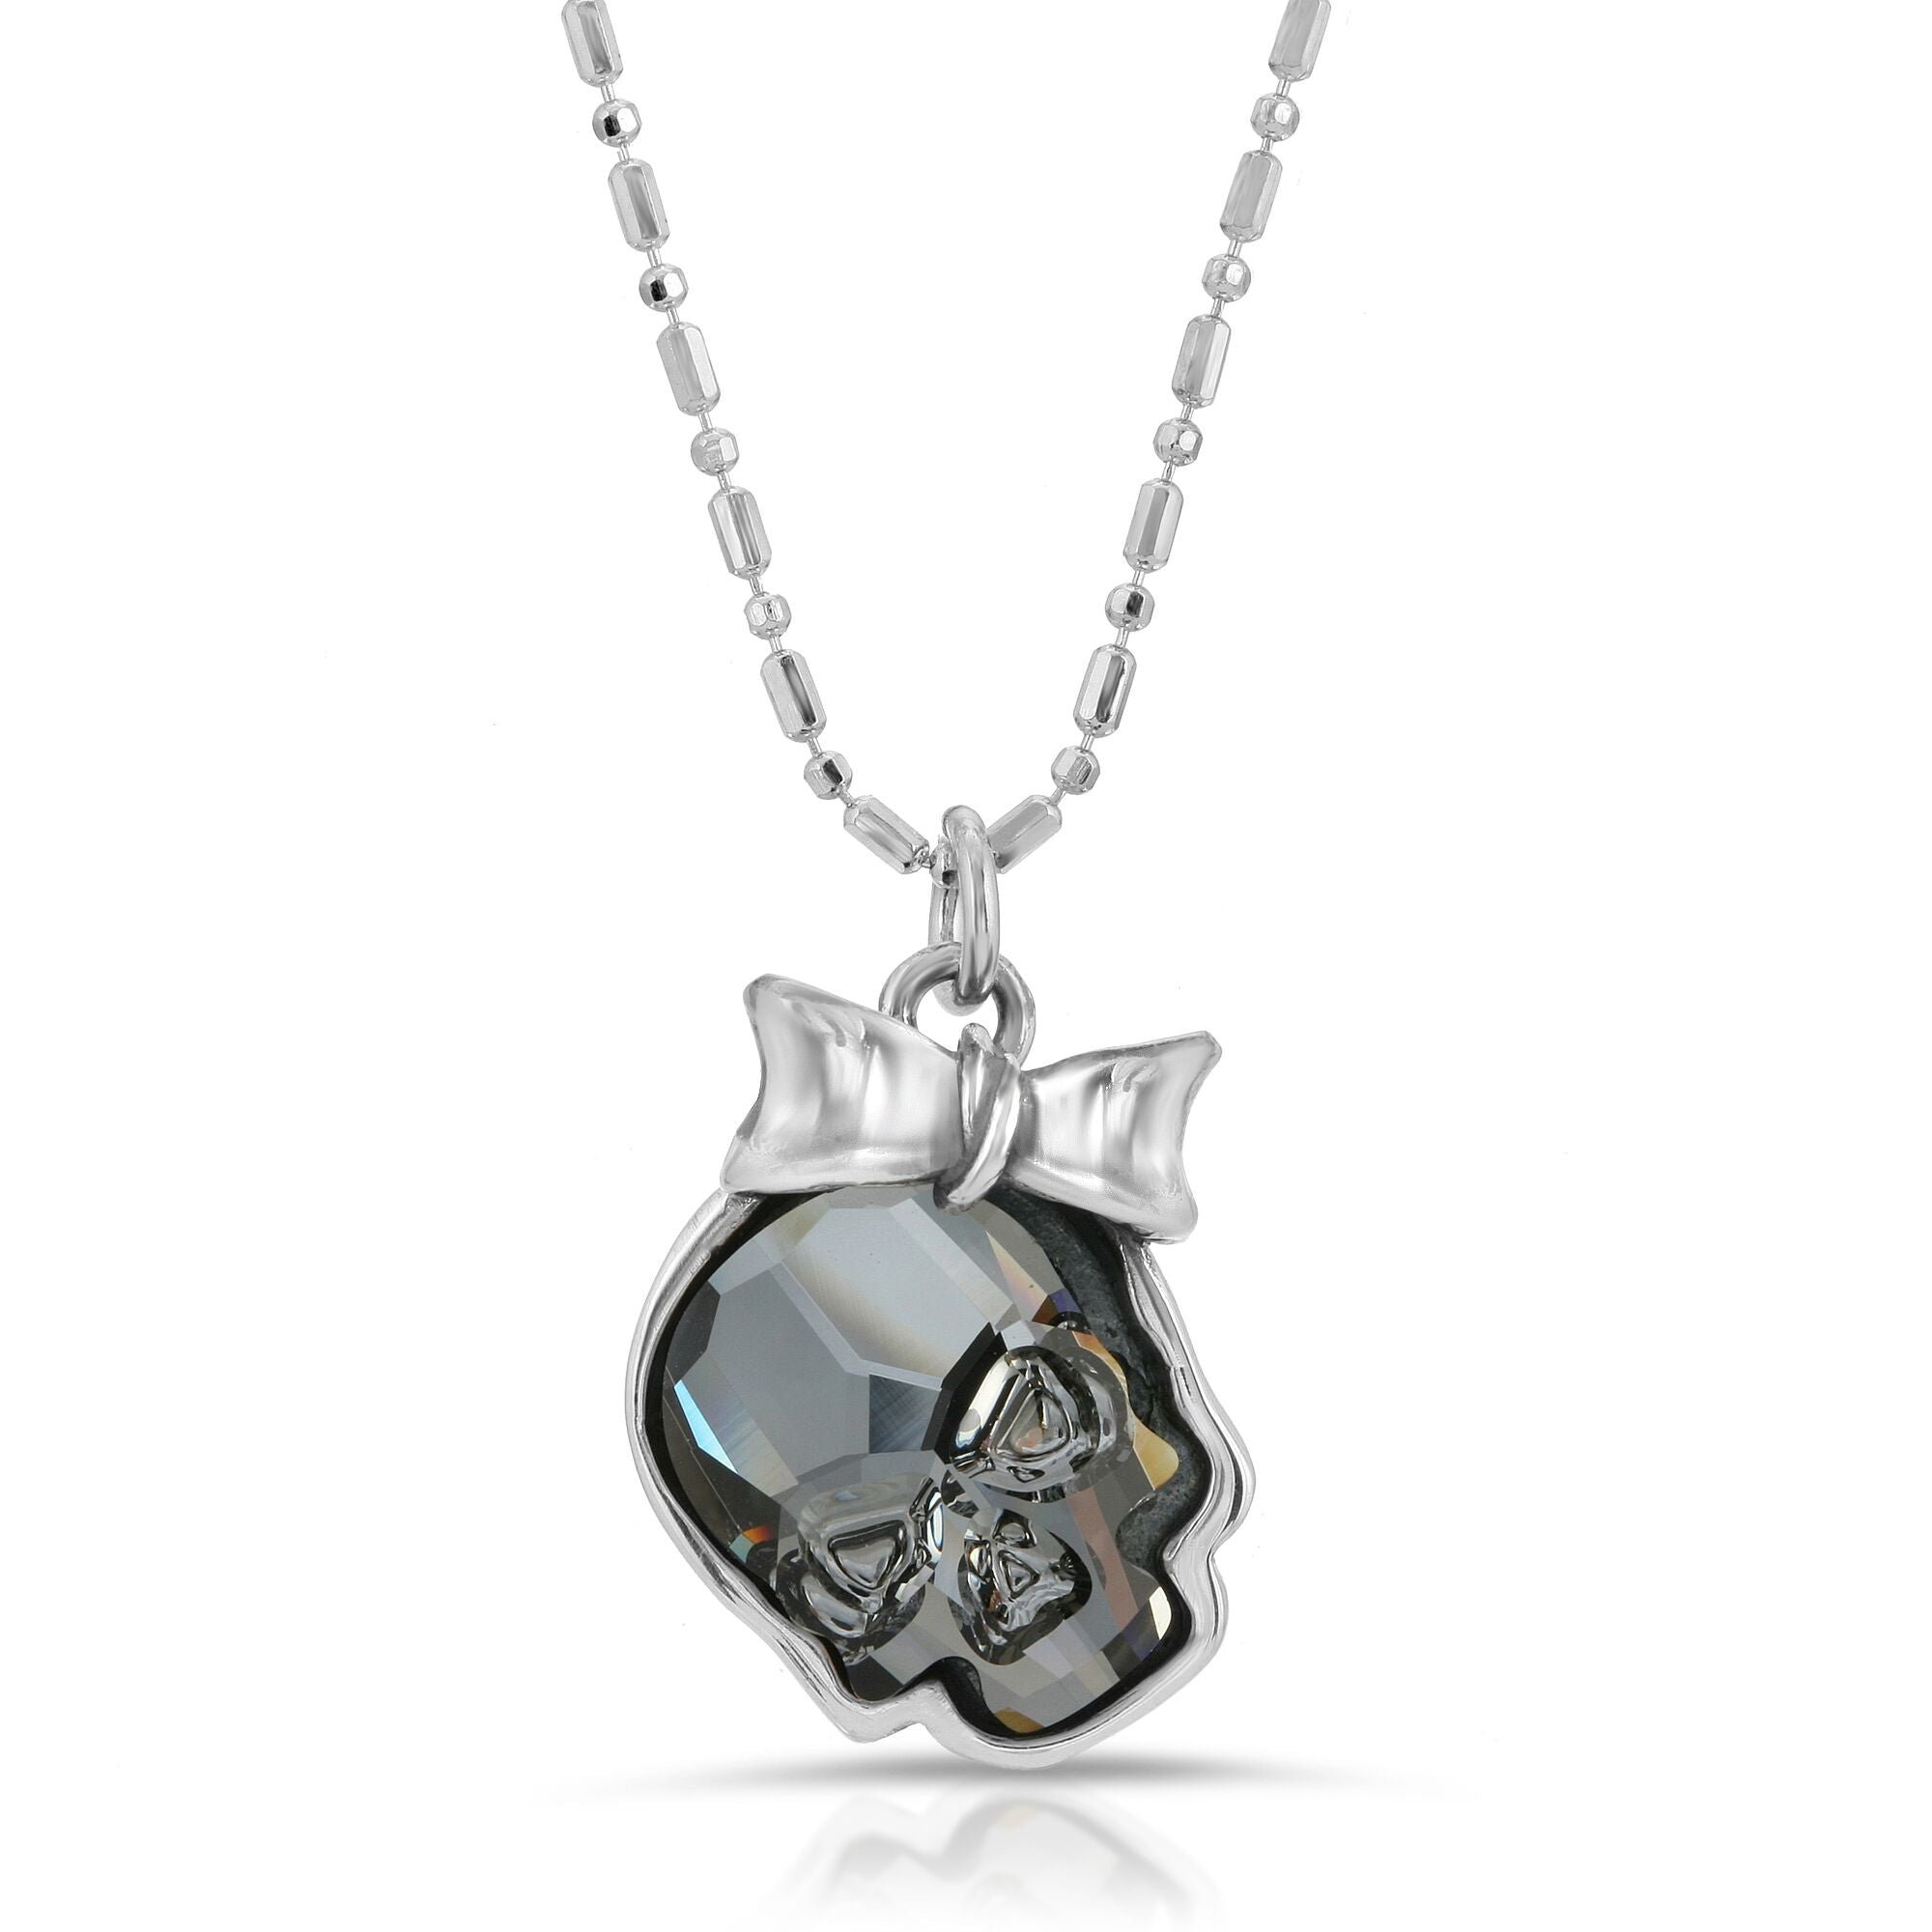 The W brothers Swarovski Skull Necklace in clear black with a gorgeous silver ribbon crafted from premium Grade A Sterling Silver. Perfect jewelry accessory necklace for fashionable statement women. Available at www.thewbros.com